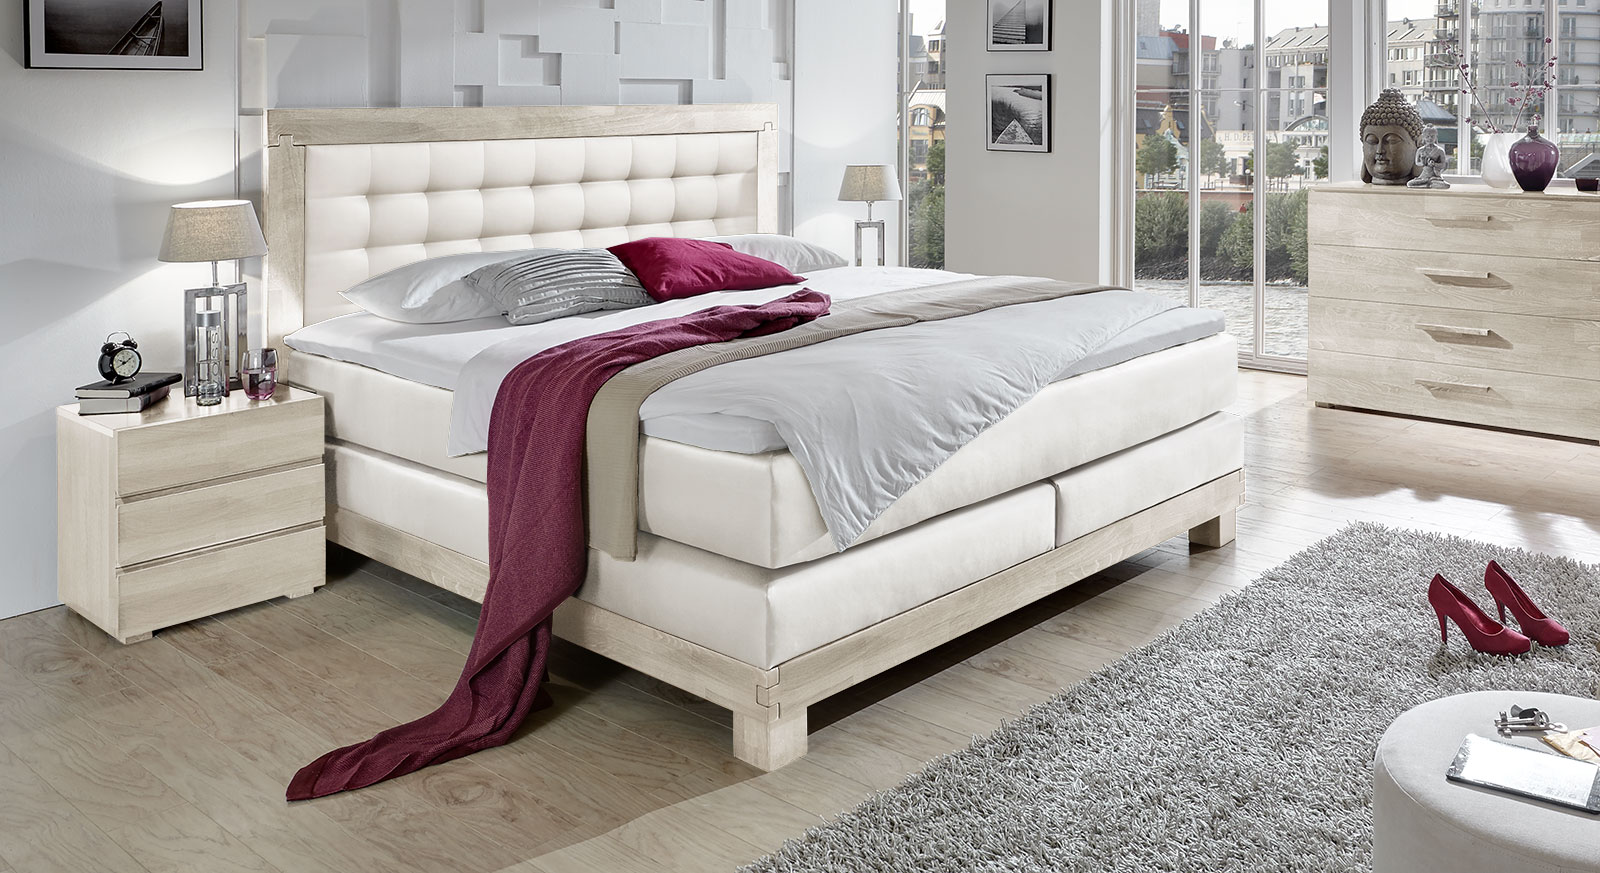 Luxus boxspringbett in kunstleder wei inkl topper pratos for Boxspringbett konfigurieren